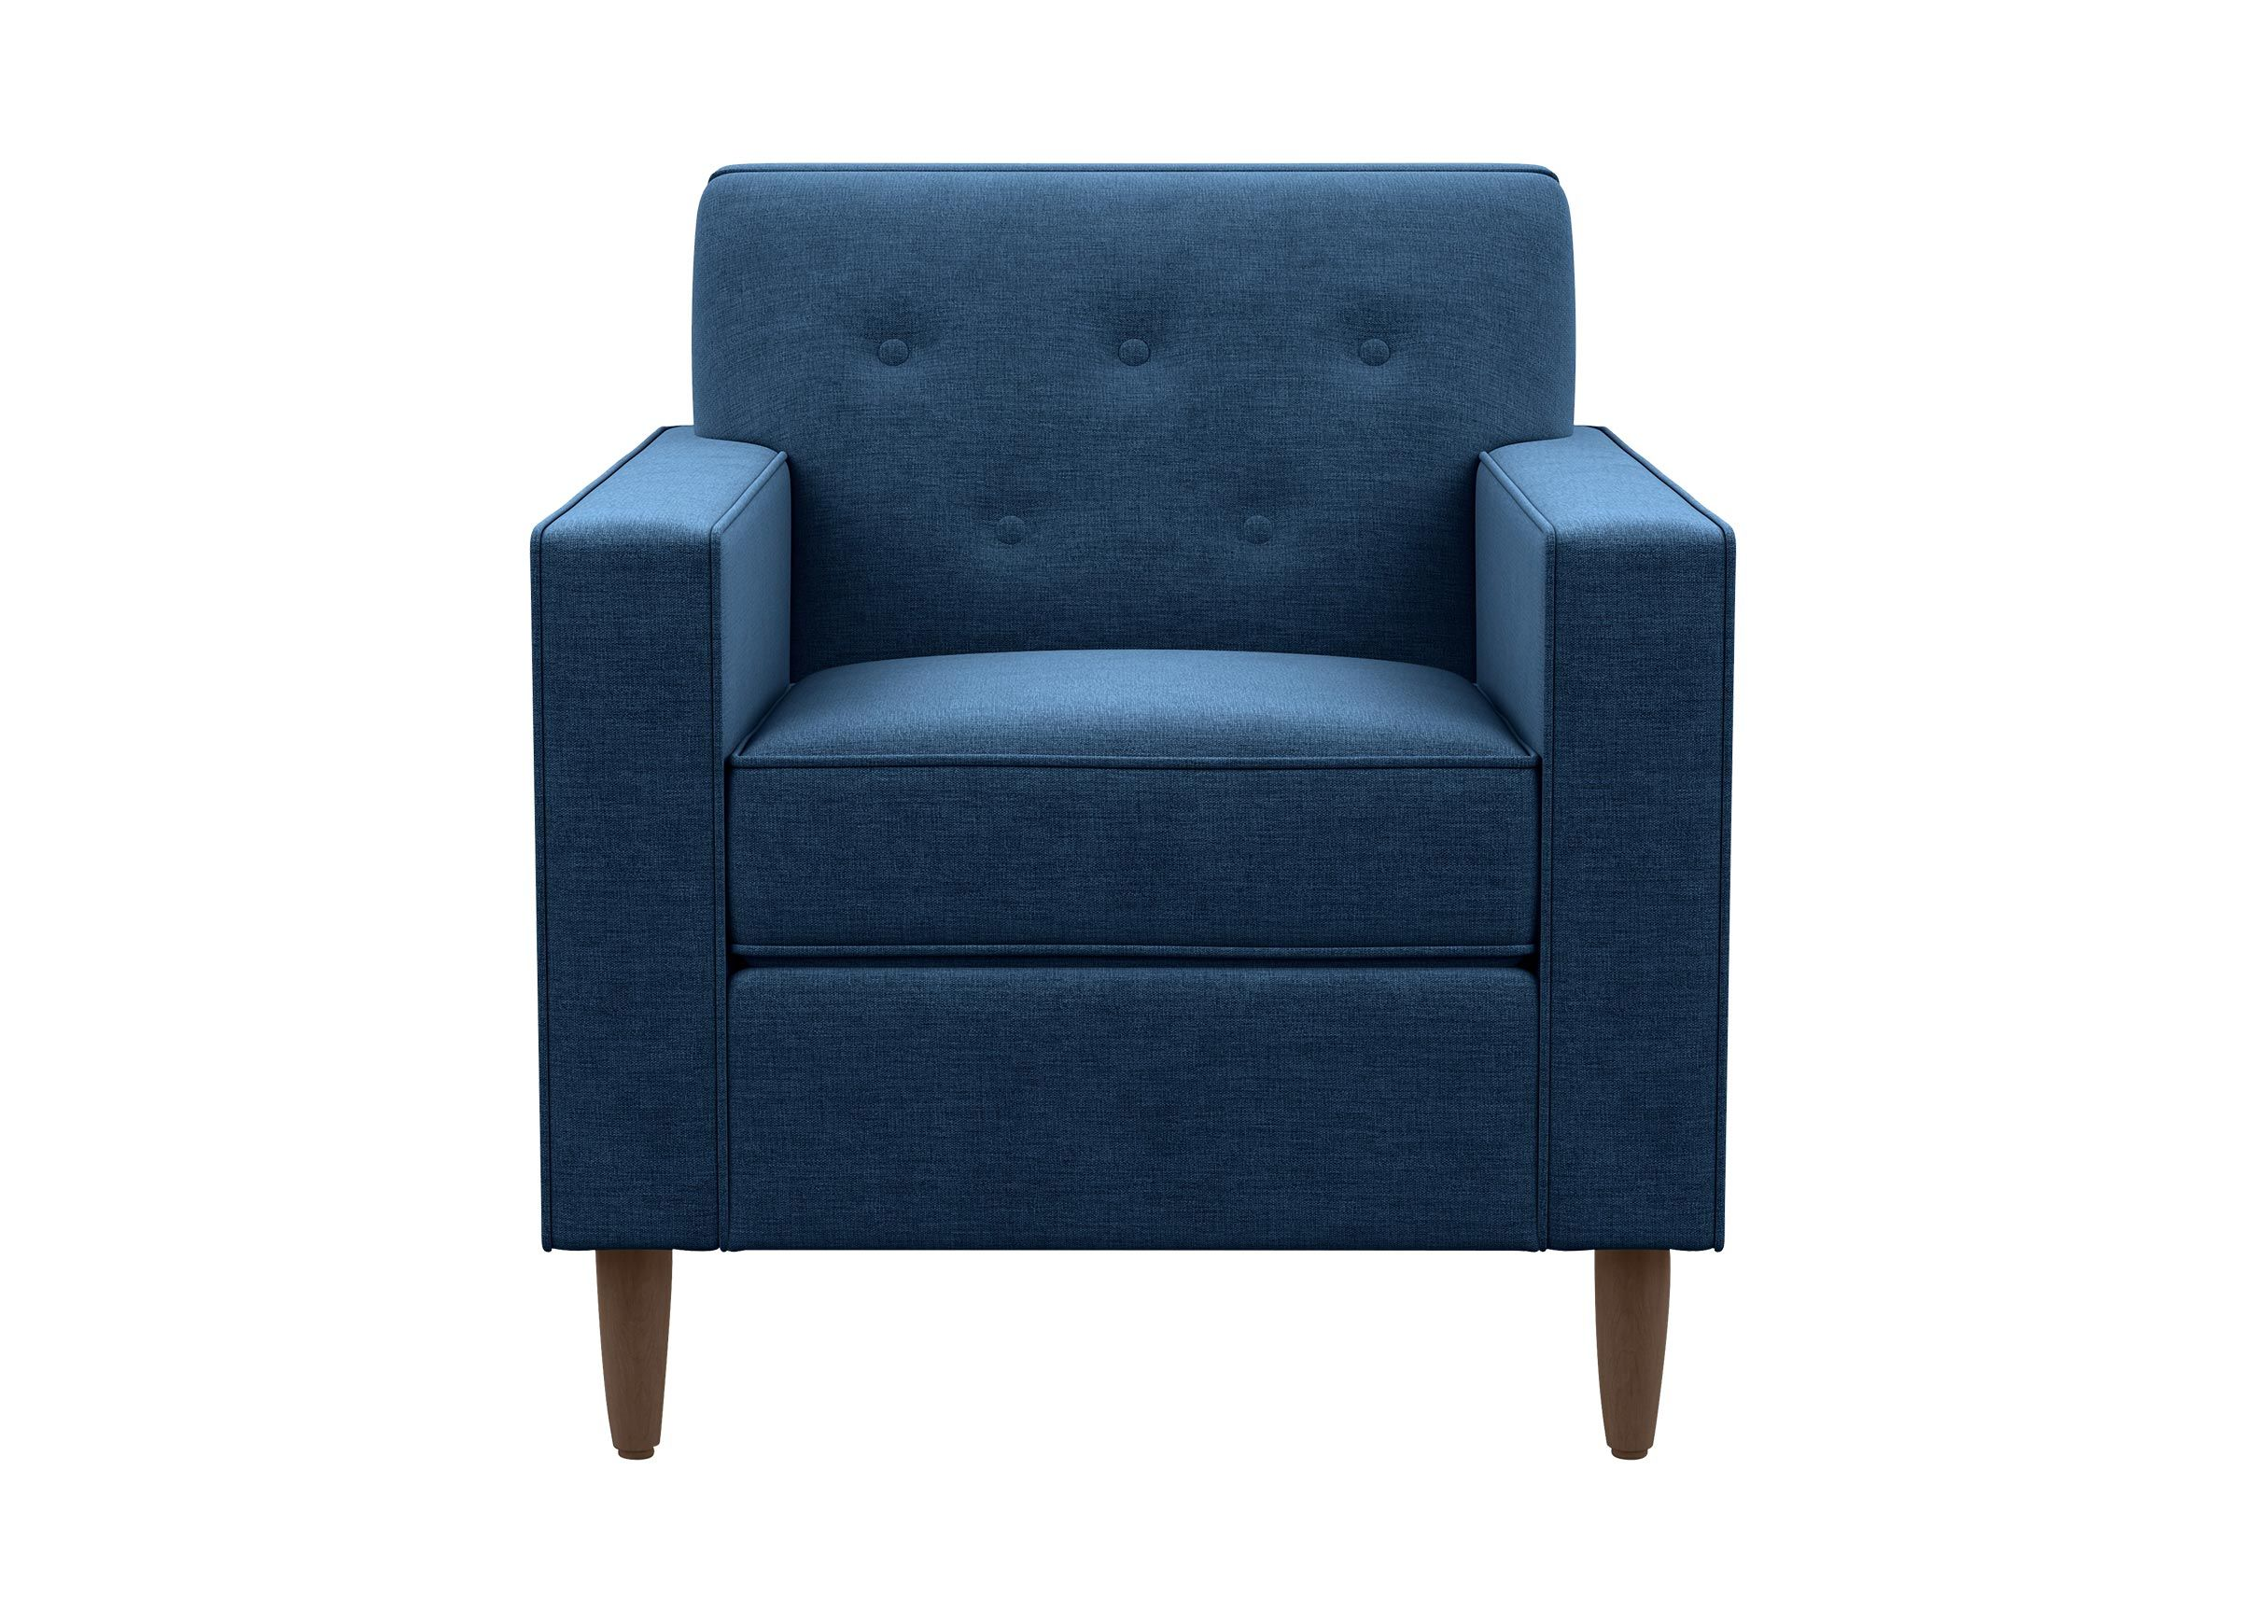 Phenomenal Marcus Upholstered Midcentury Modern Armchair Ethan Allen Gmtry Best Dining Table And Chair Ideas Images Gmtryco